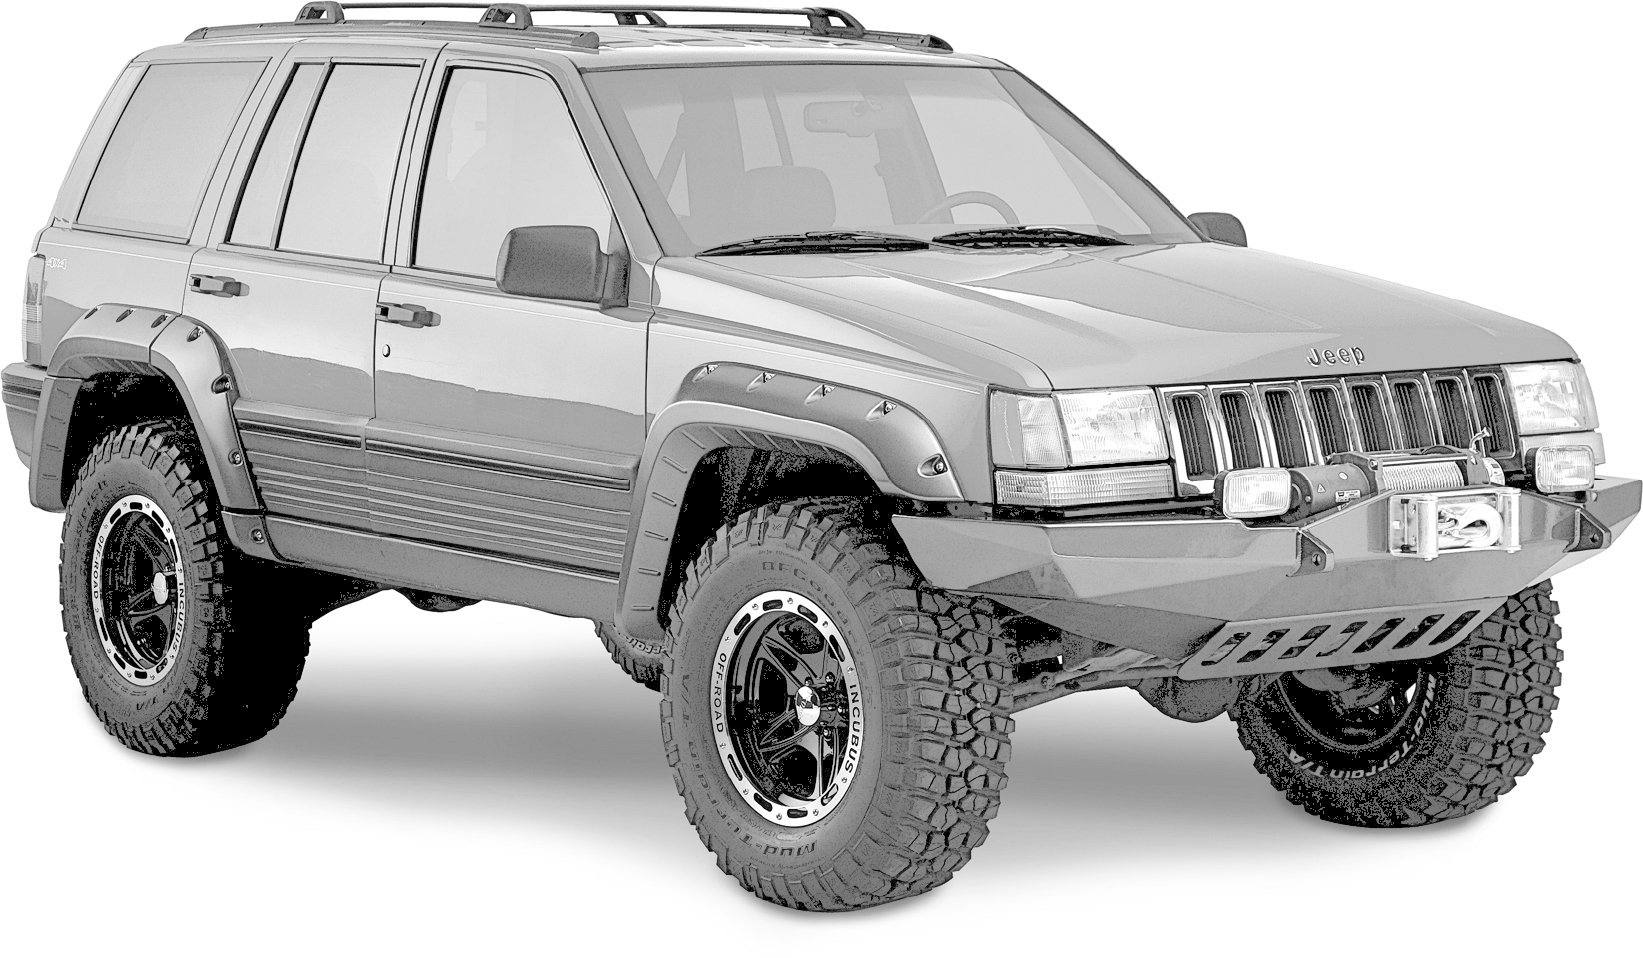 2000 Jeep Grand Cherokee Radio Wiring Diagram from carpny.org